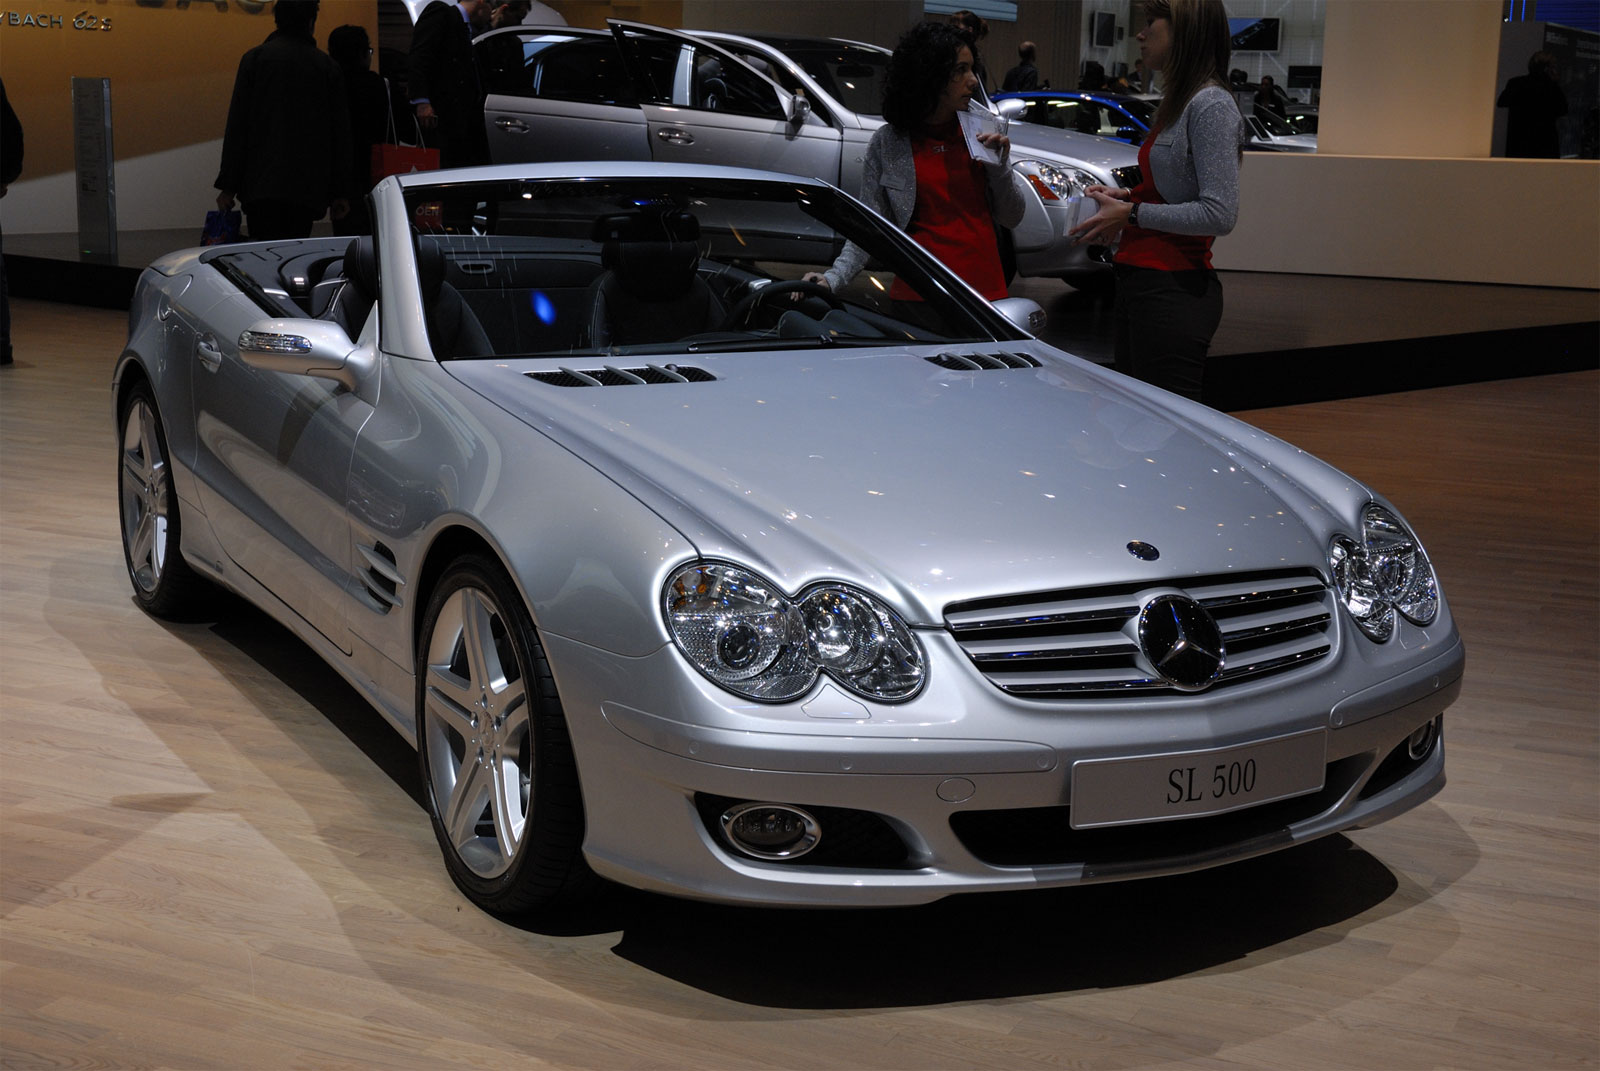 Mercedes benz sl 500 technical details history photos on for Www mercedes benz parts